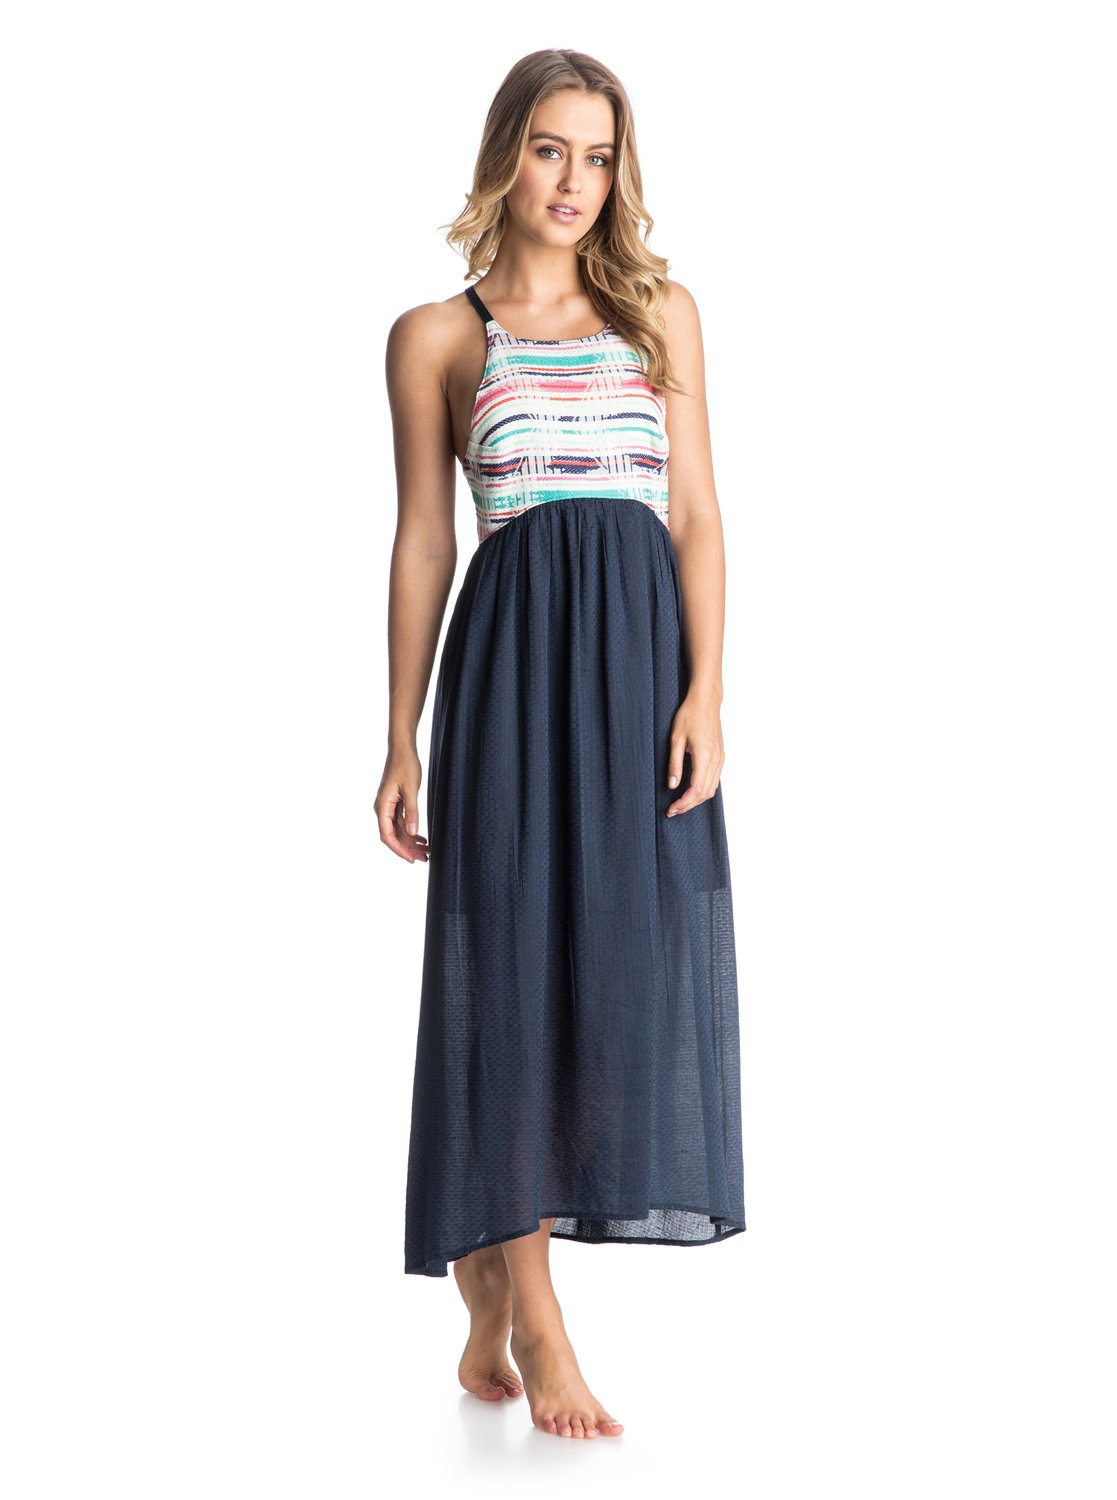 All Washed Out Dress 888256794146 | Roxy